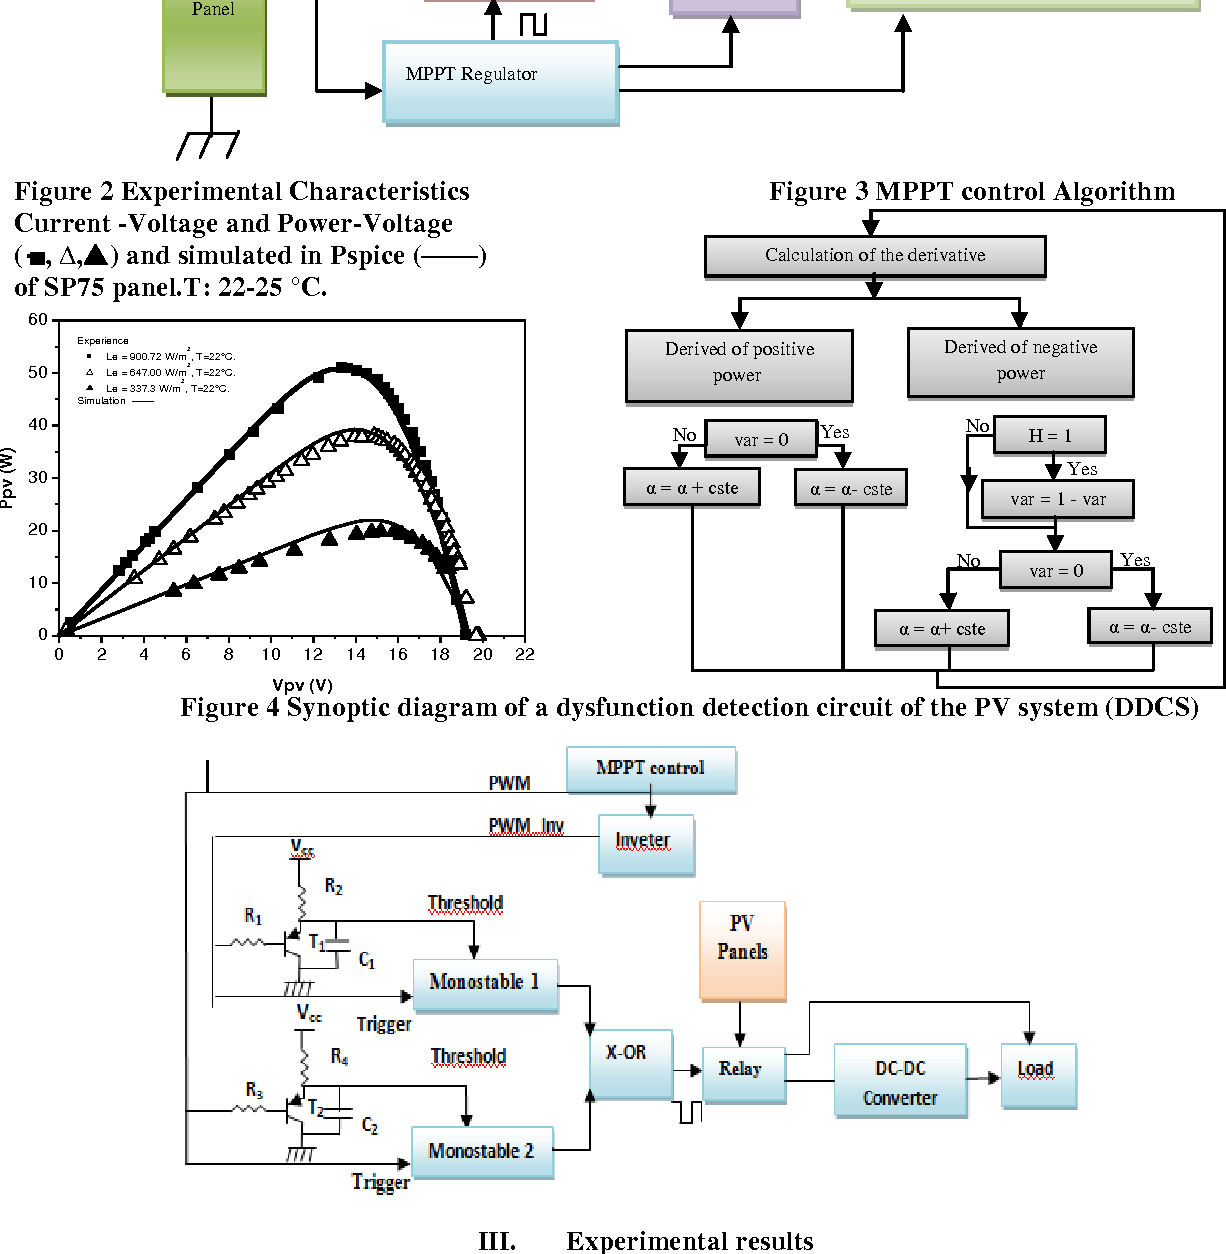 hight resolution of figure 4 synoptic diagram of a dysfunction detection circuit of the pv system ddcs